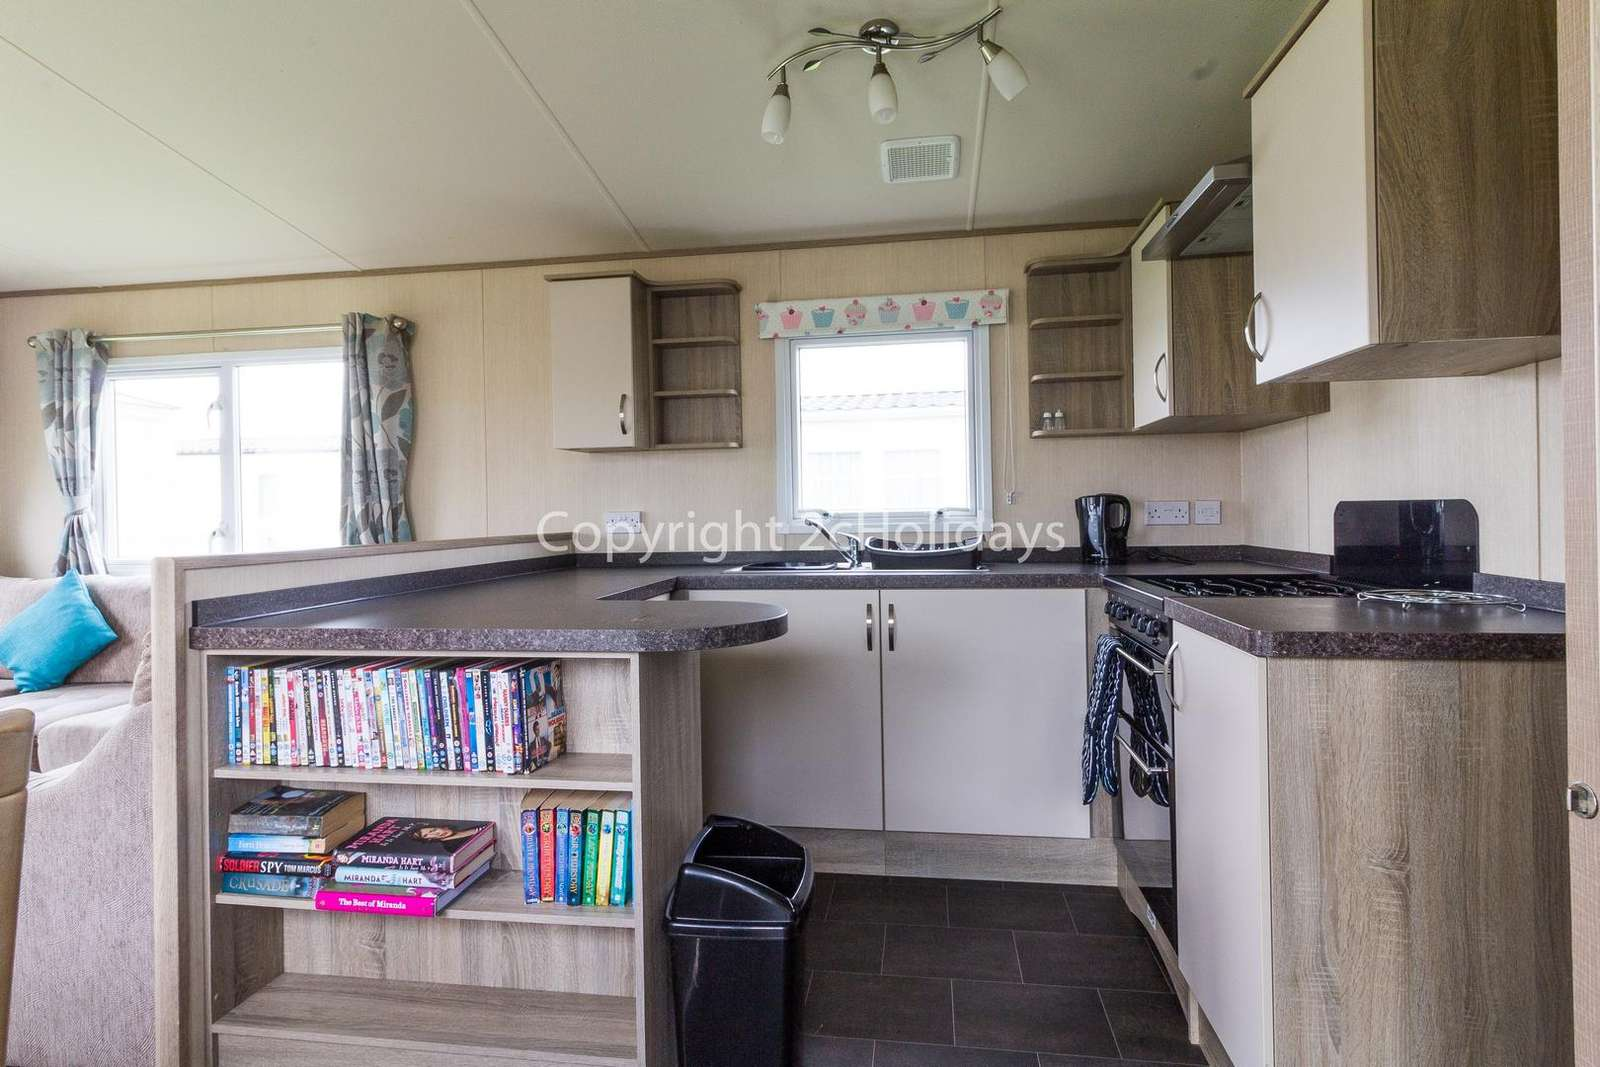 Spacious fully equipped kitchen, perfect for self-catering breaks!